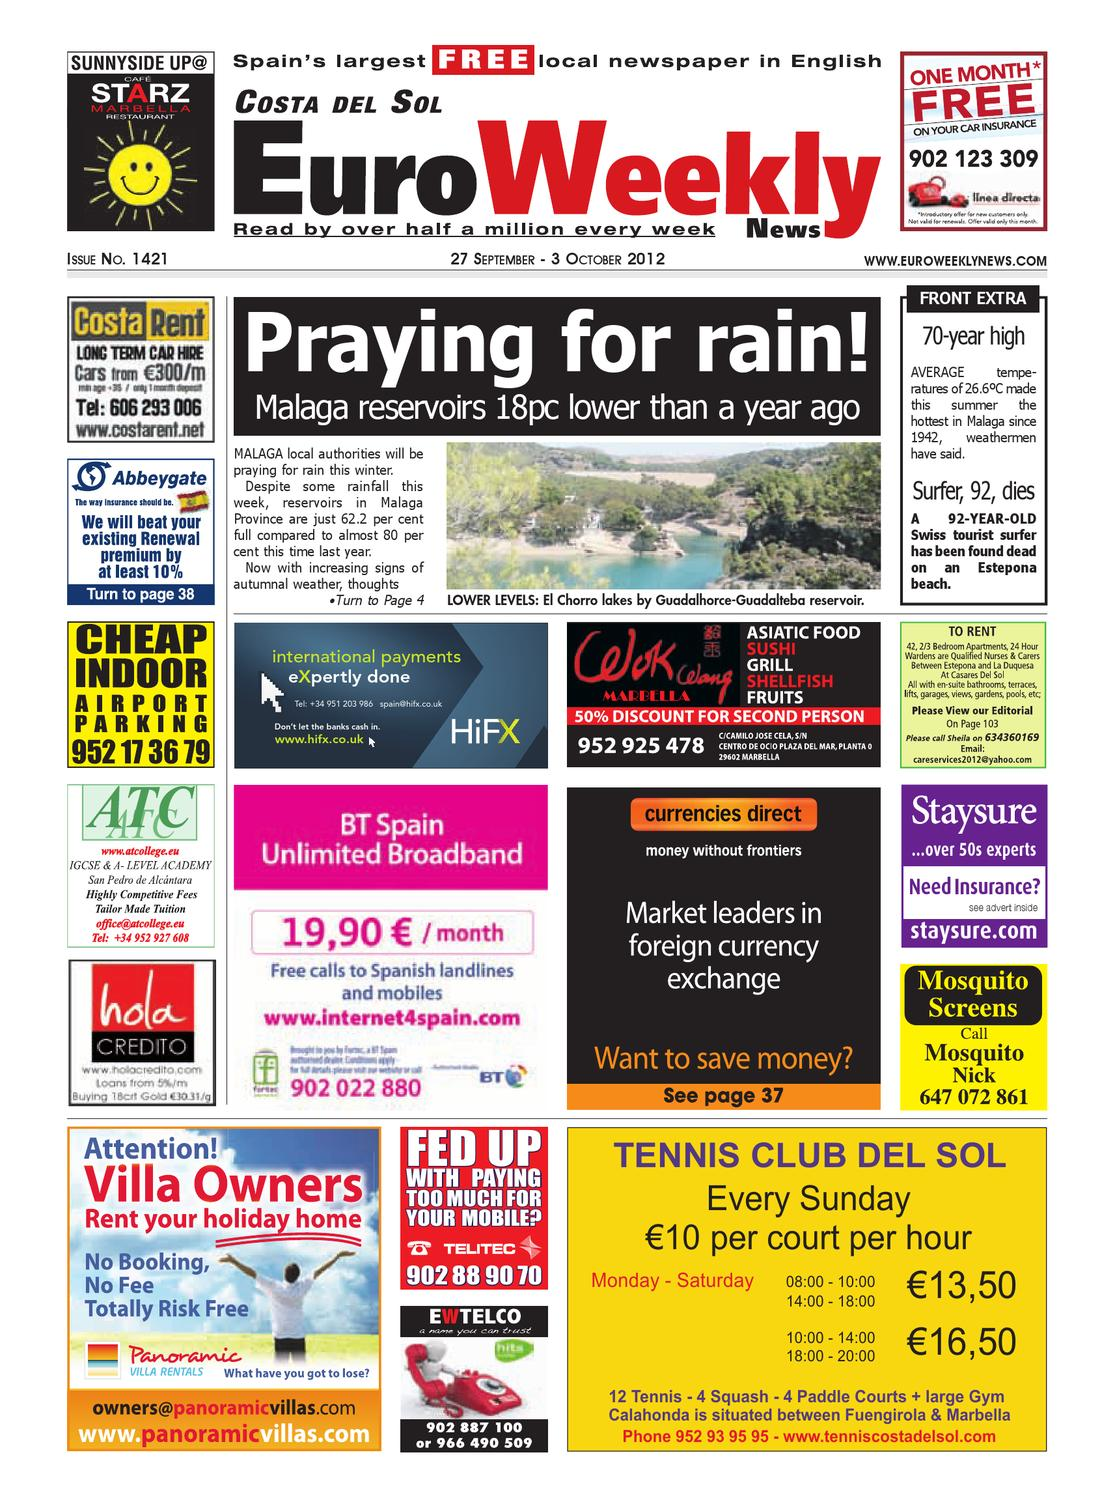 Costa del Sol 27 September - 3 October 2012 Issue 1421 by Euro Weekly News  Media S.A. - issuu